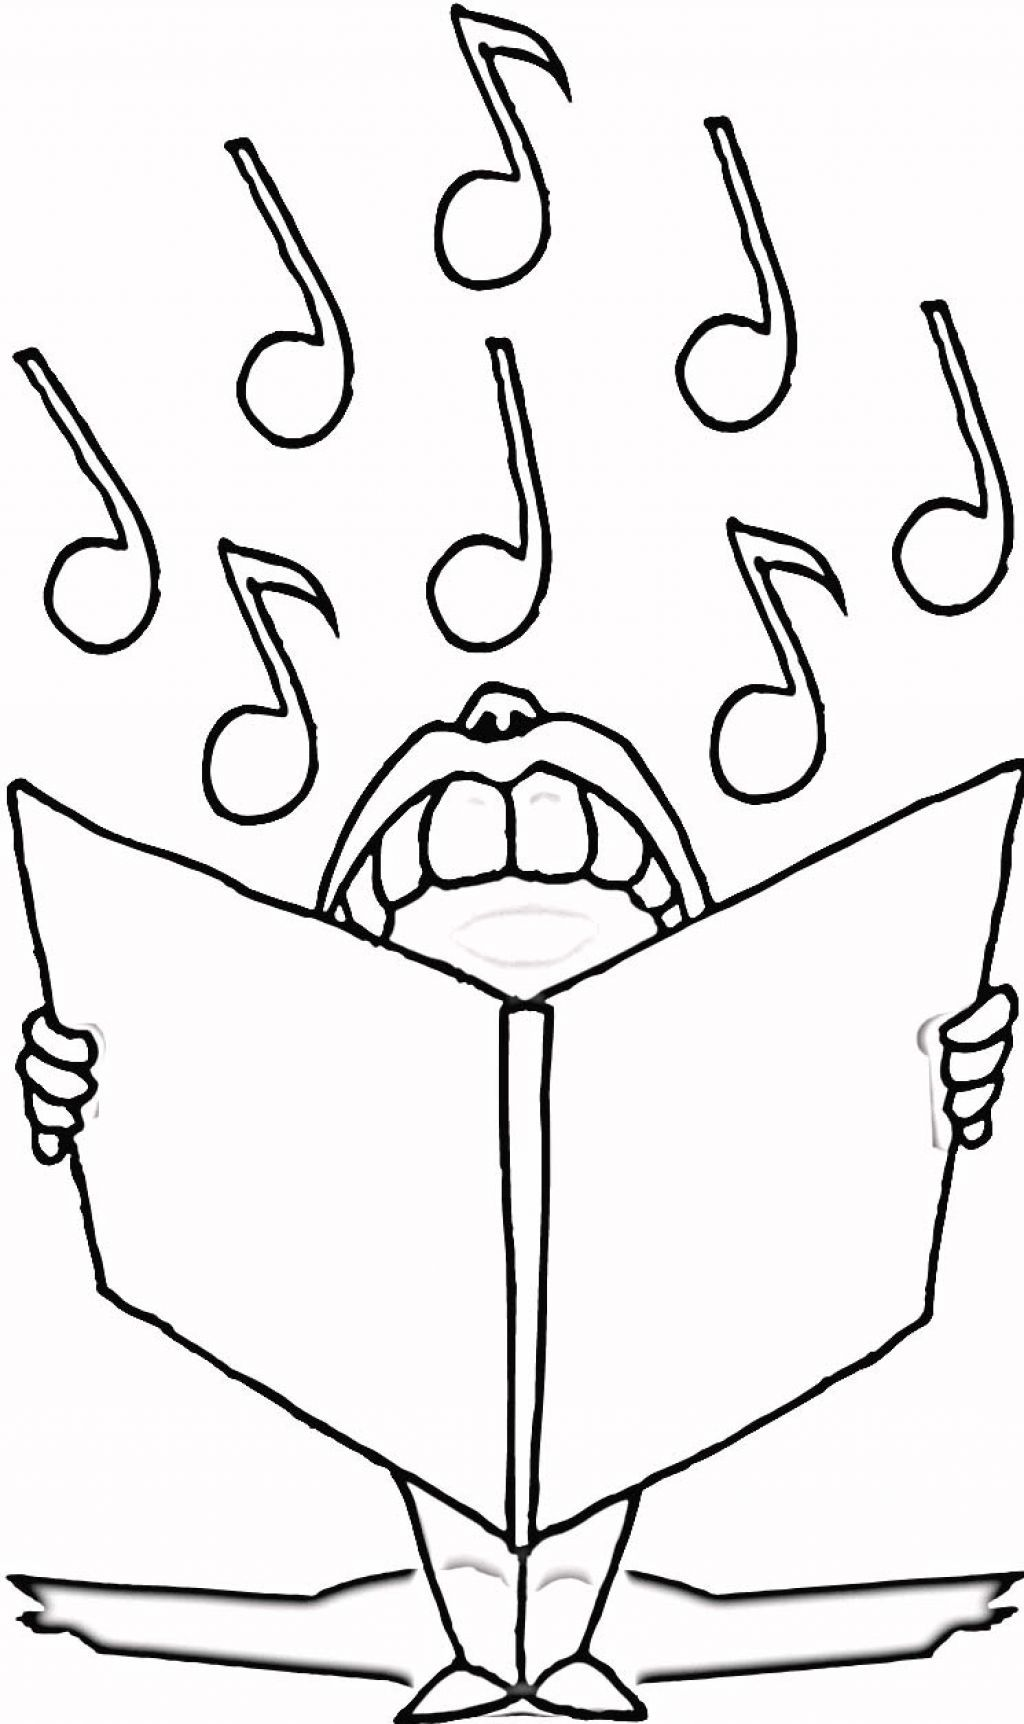 Free Printable Music Note Coloring Pages For Kids Music Coloring Sheets Coloring Pages Christmas Music Coloring [ 1724 x 1024 Pixel ]